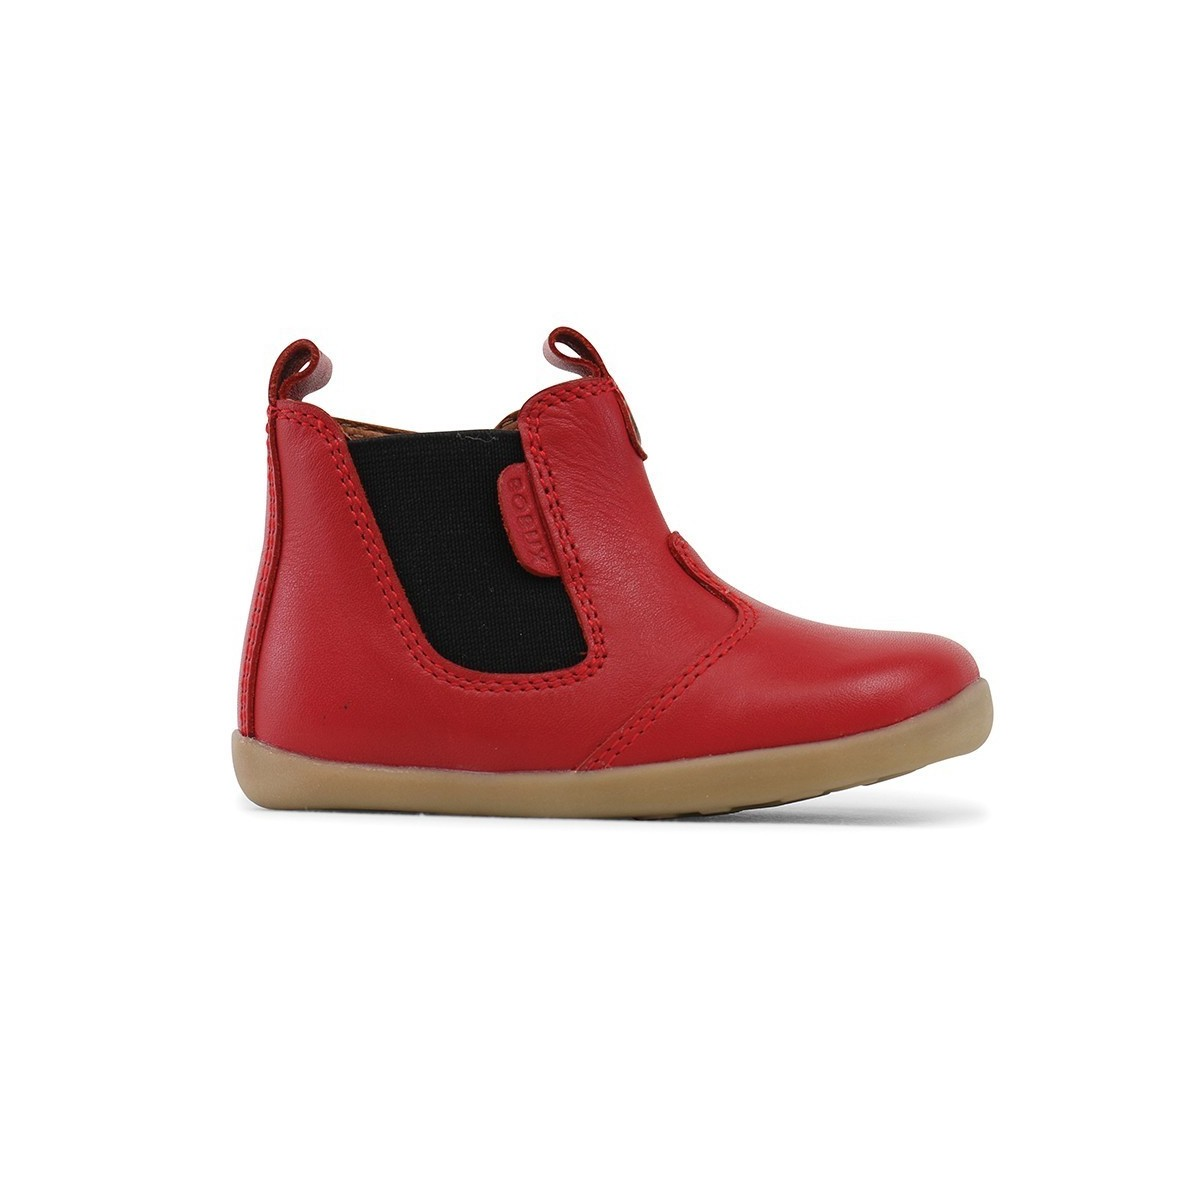 Boots Step-up Jodphur cuir rouge